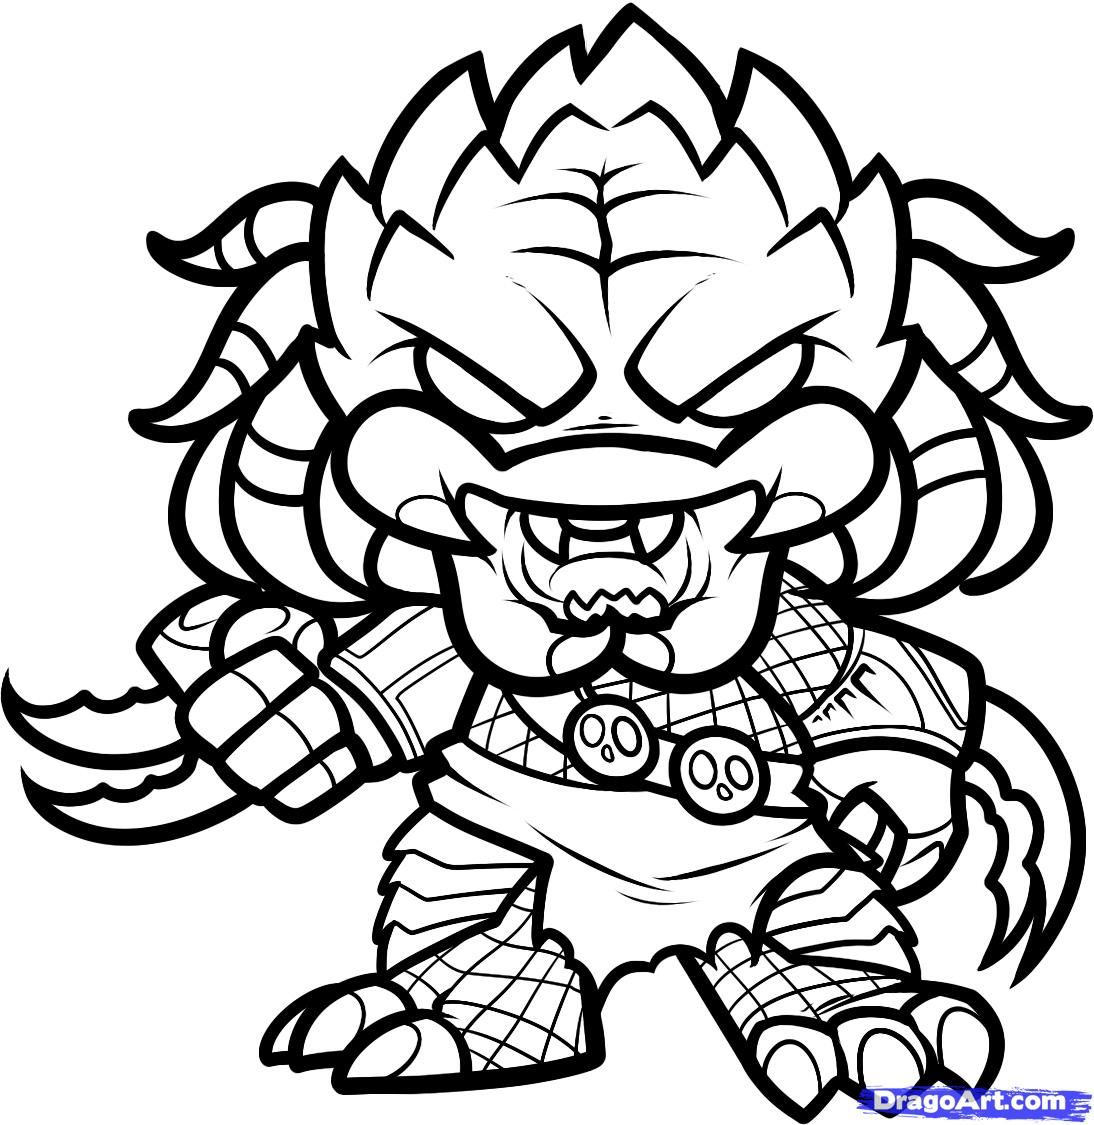 Predator Coloring Pages Coloring Pages Drawings Chibi Drawings